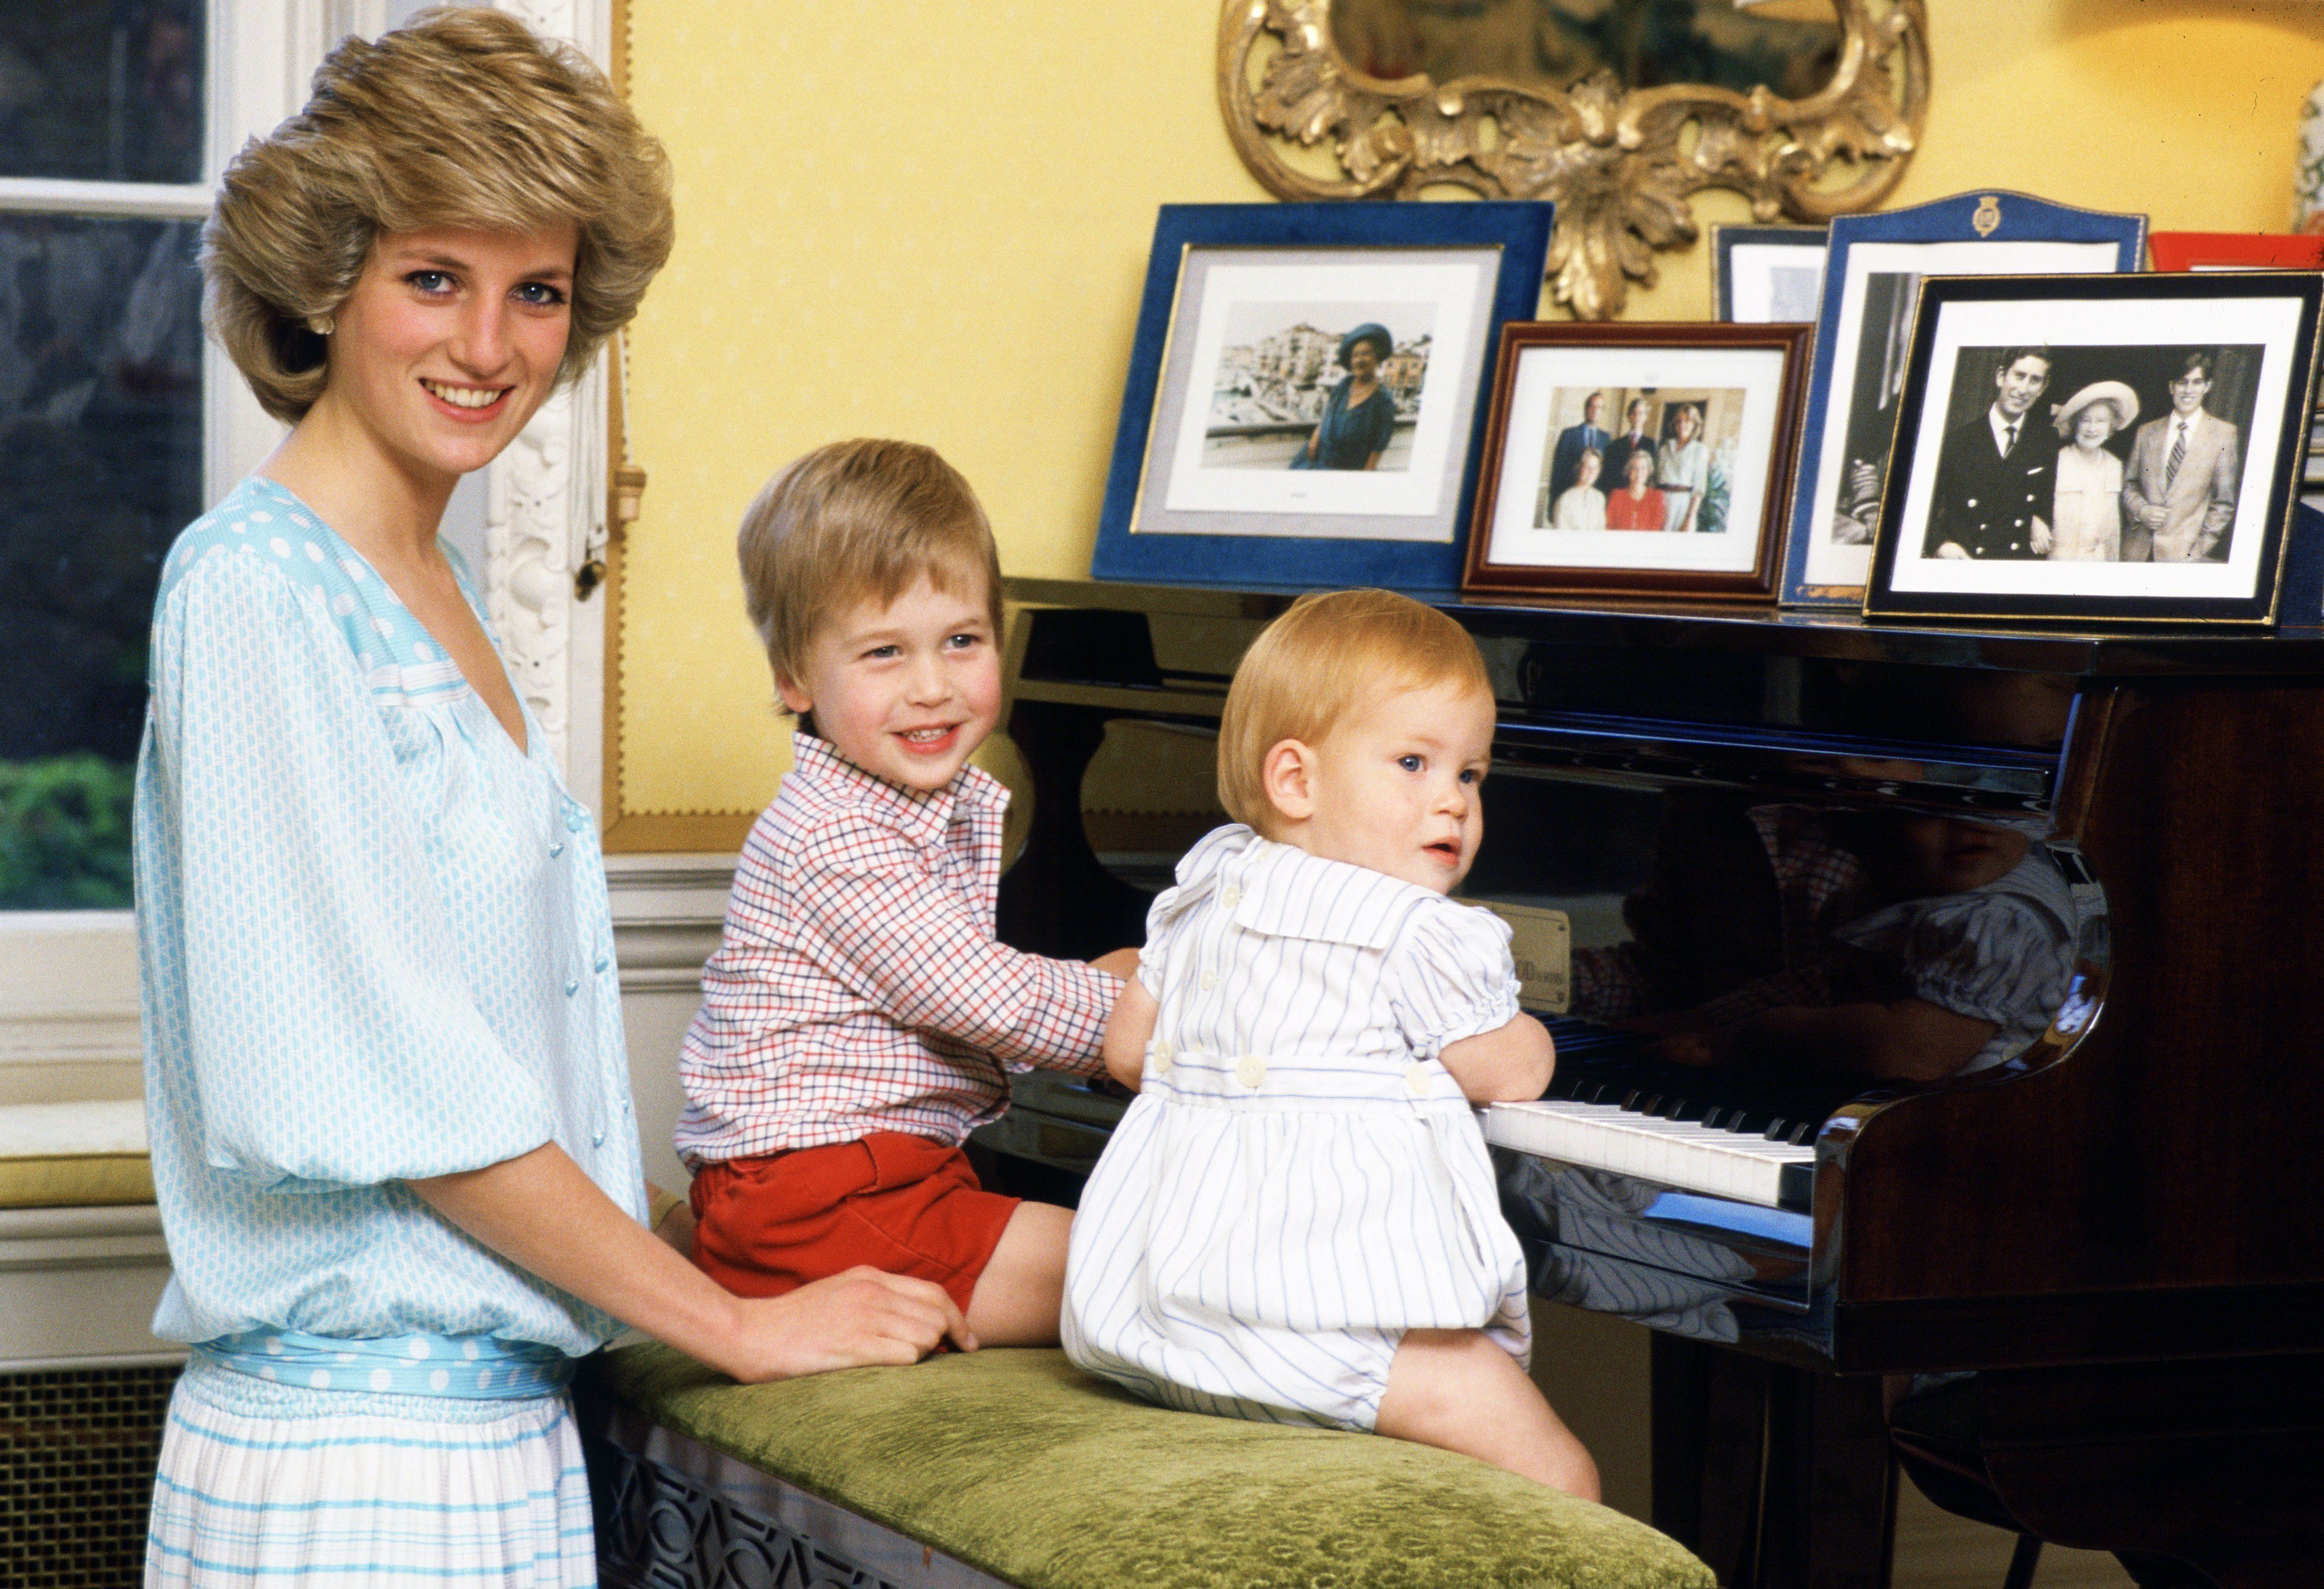 Princess Diana took her role as mother to Prince William and Prince Harry very seriously.